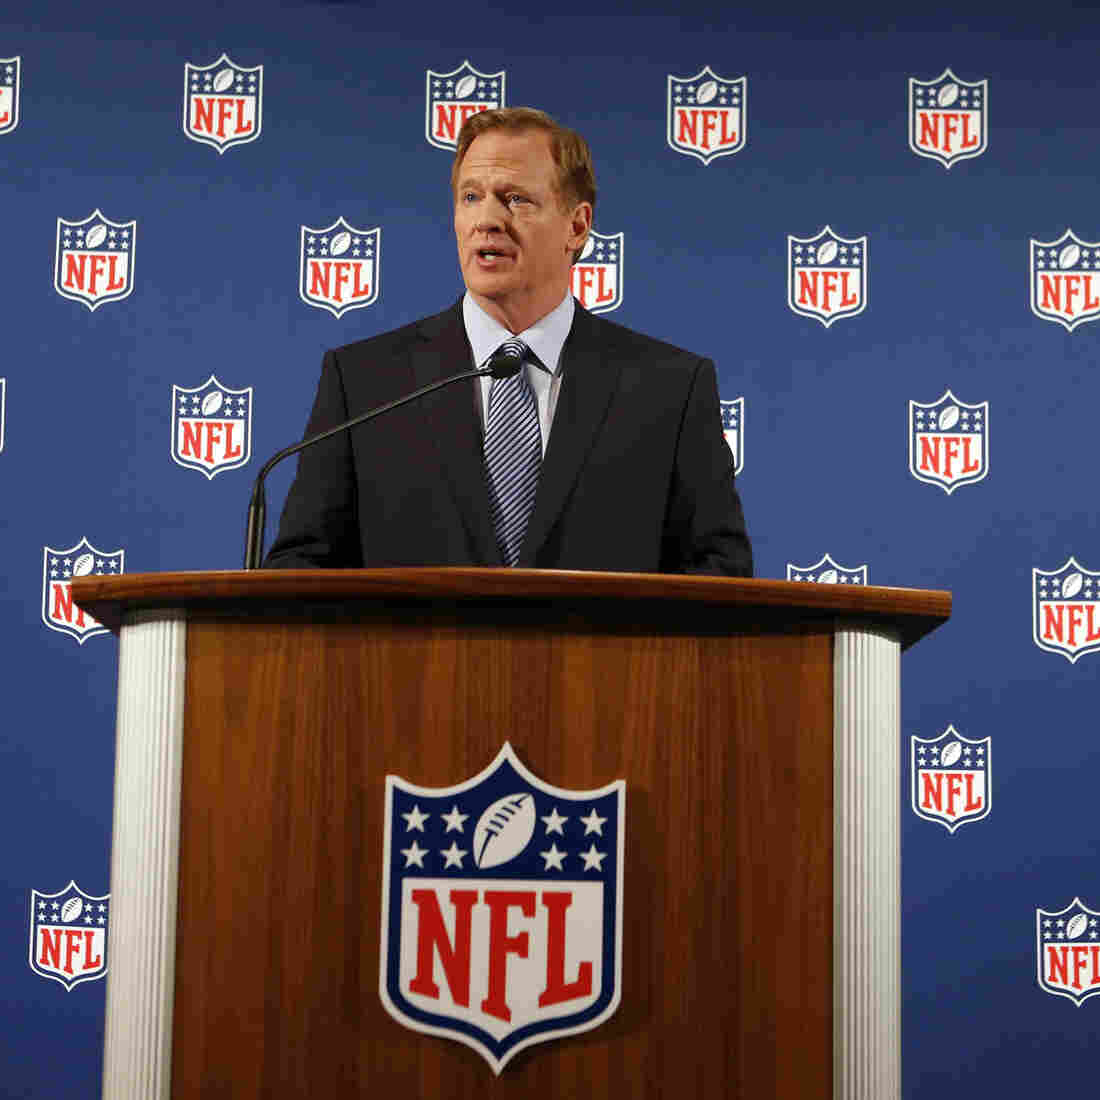 """NFL Commissioner Roger Goodell held a news conference on Friday, during which he said, """"I got it wrong on the handling of Ray Rice. ... But now I will get it right."""""""